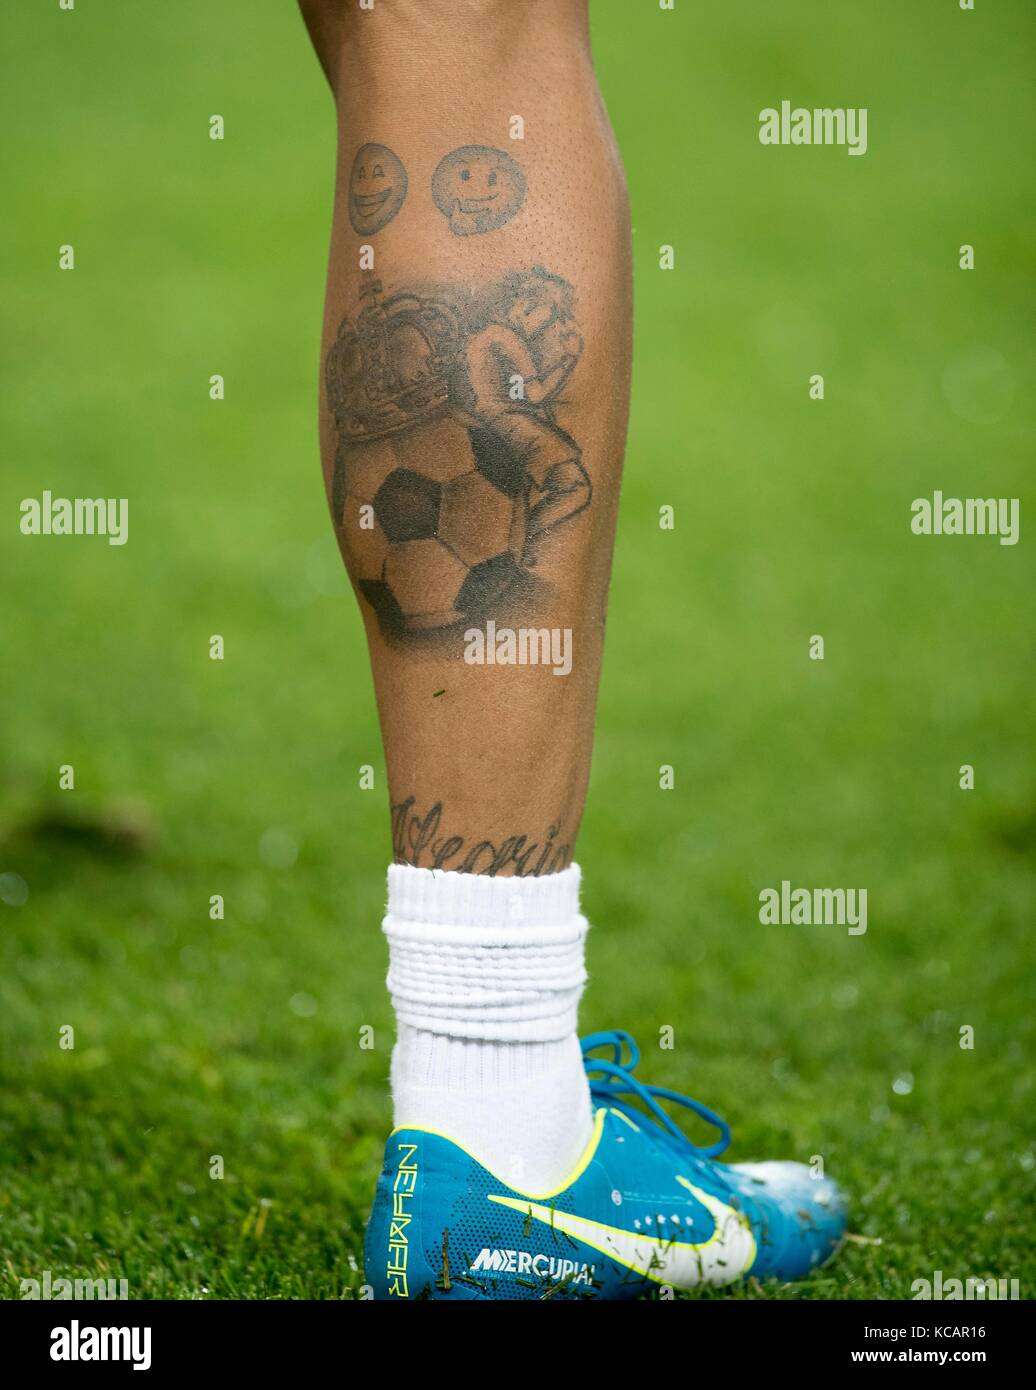 Fuss Tattoo Stock Photos Fuss Tattoo Stock Images Alamy